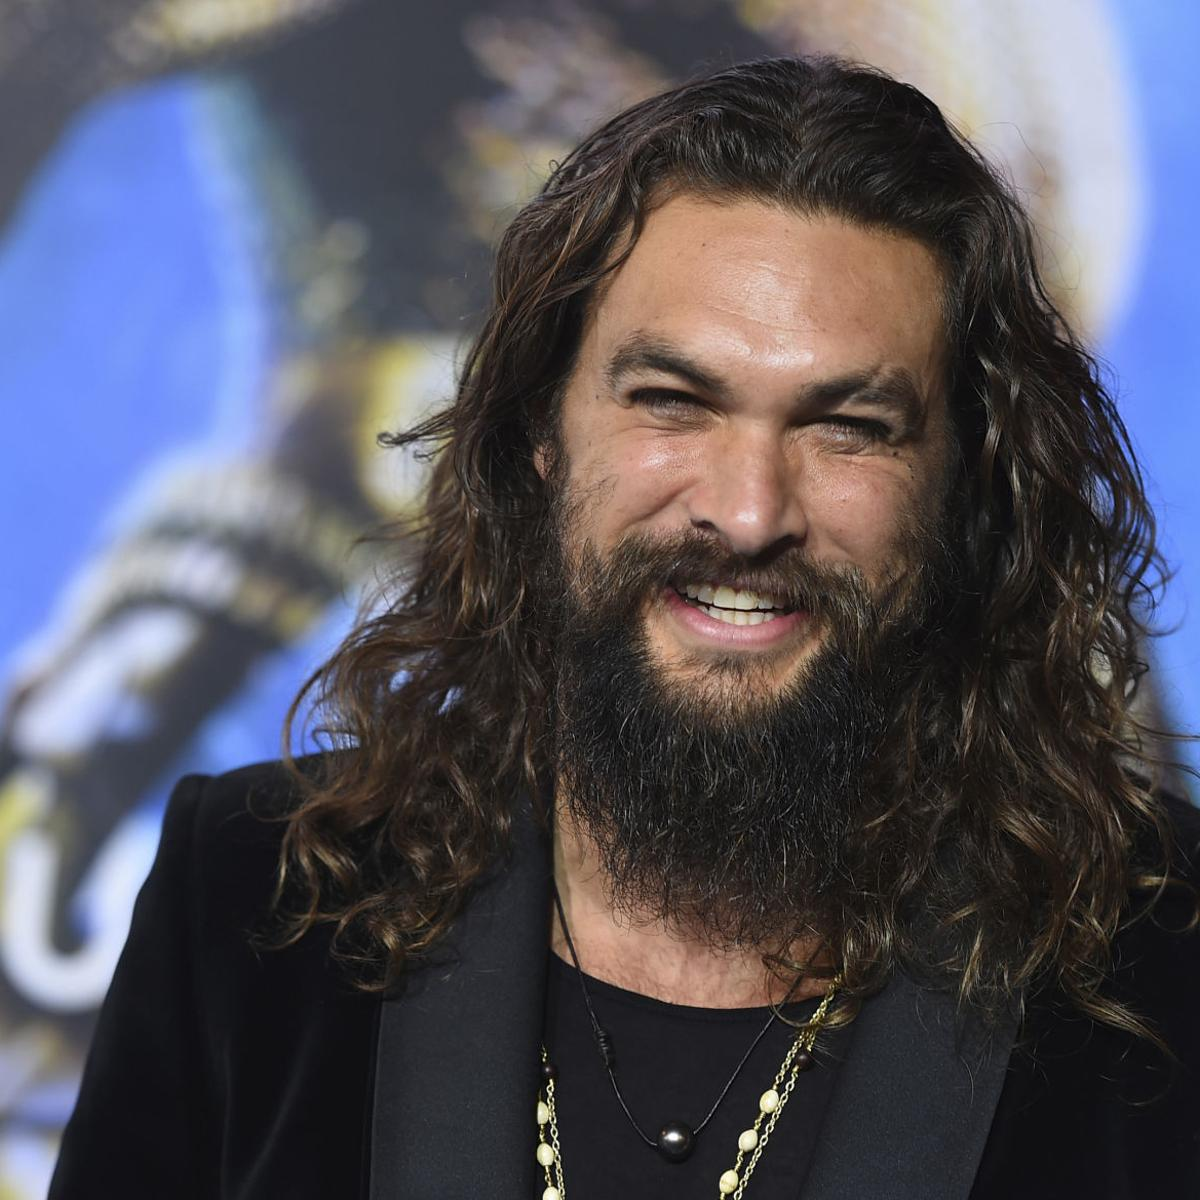 Jason Momoa shaved his beard and people are freaking out